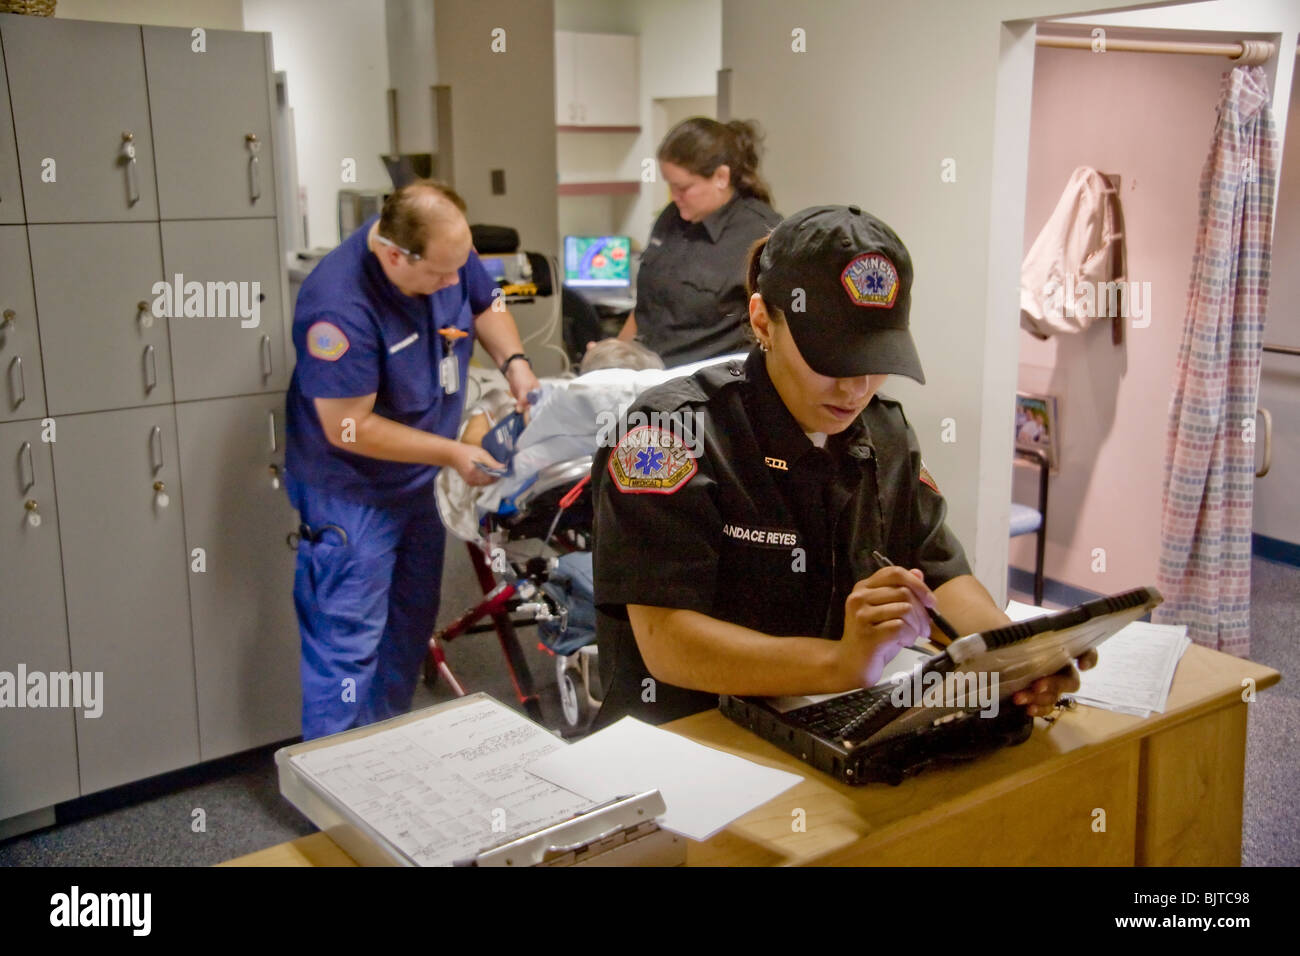 Emergency medical technicians, one of them a registered nurse (background, left), fill out paperwork at  radiology - Stock Image